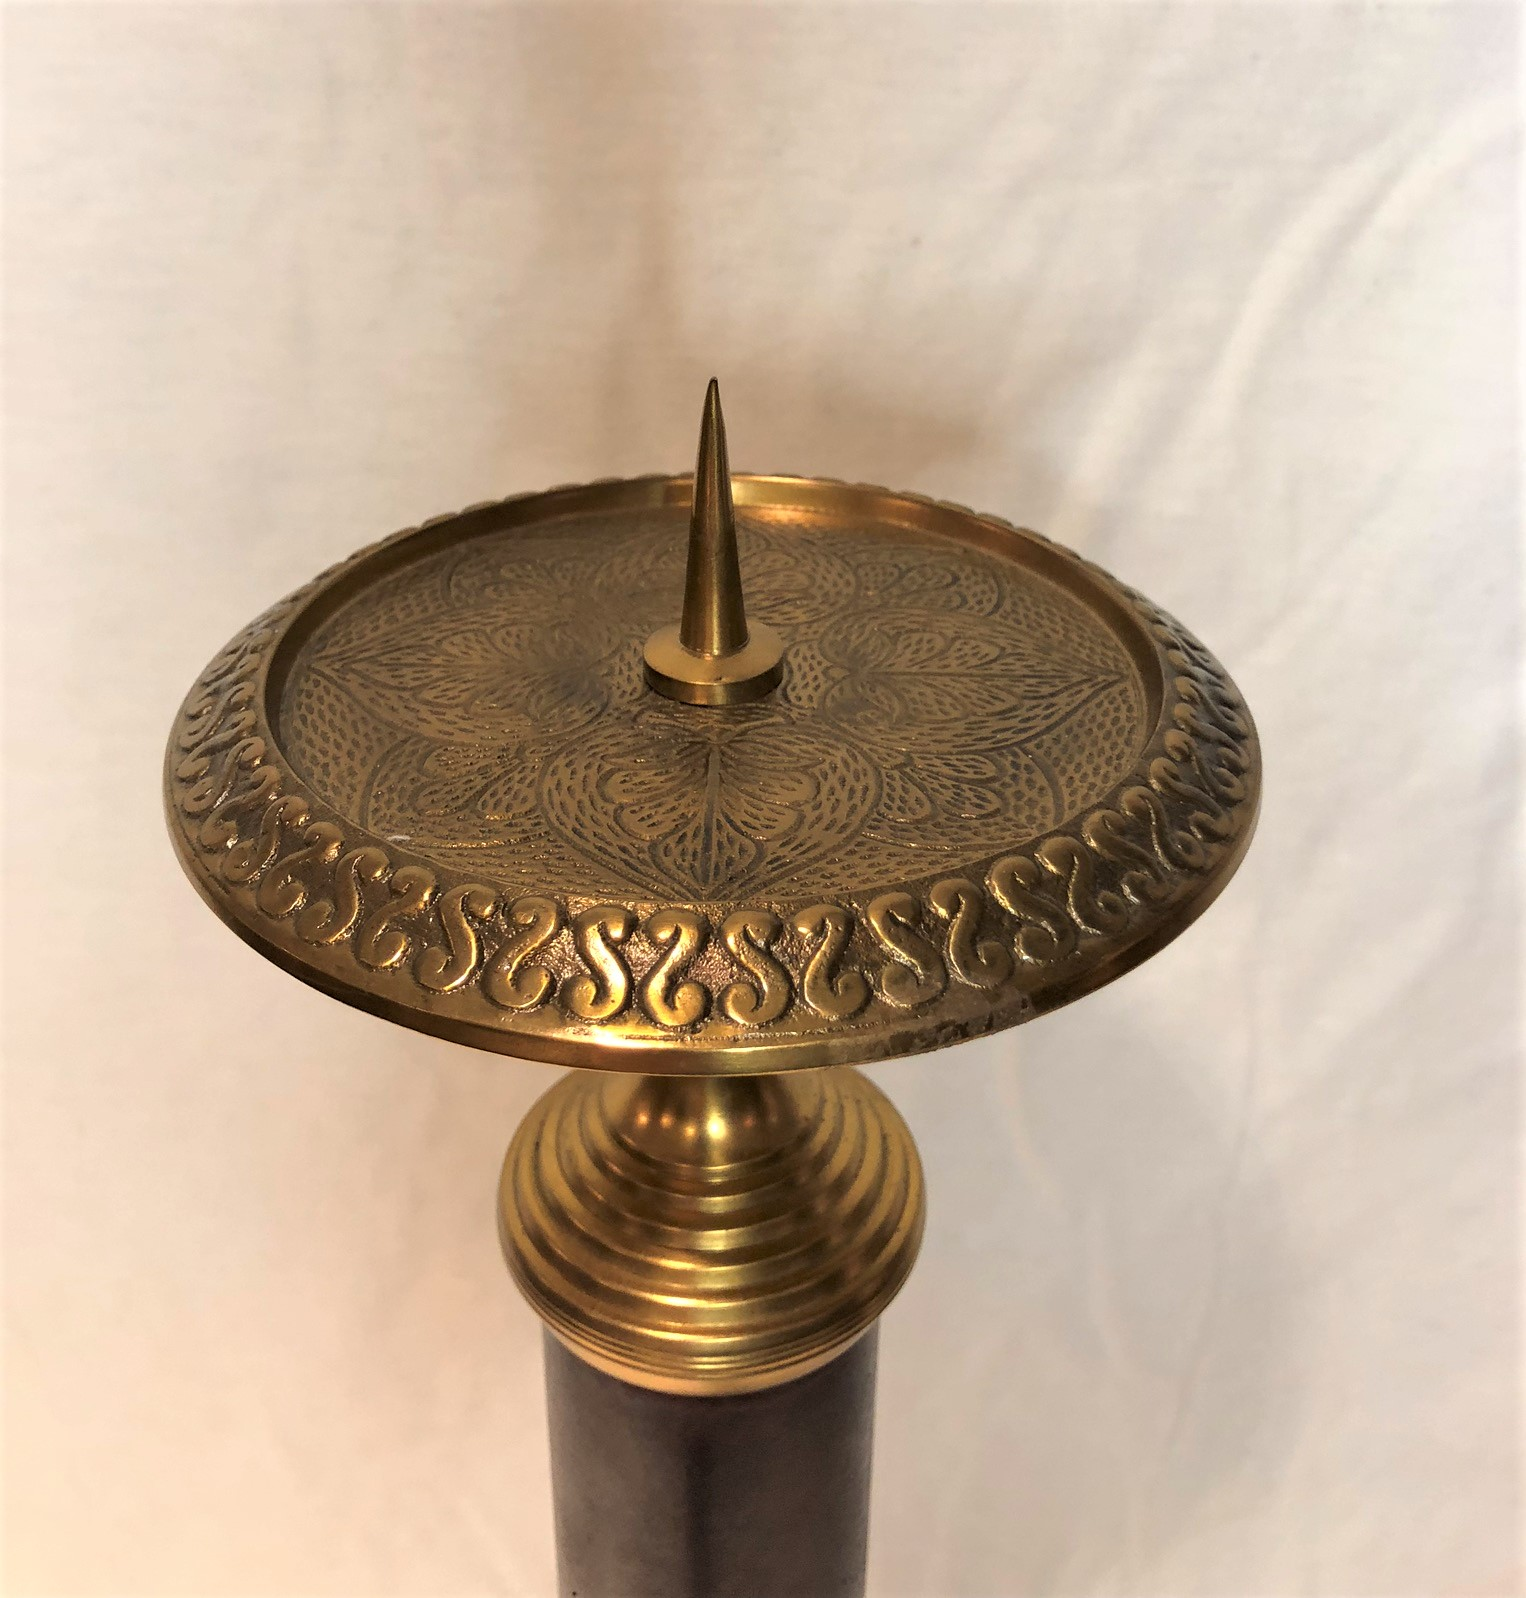 Tall Classic Metal Candlestick With Faux Burl Wood Finish And Brass Accents 6 X6 X25 H